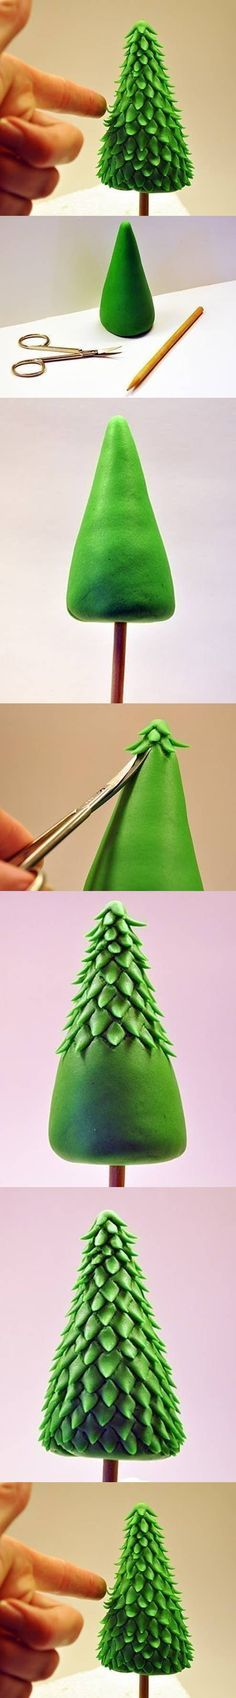 Repiny - Most inspiring pictures and photos! | Crafts an DIYs | Pinterest | Bäume, Fondant und Weihnachtsbäume